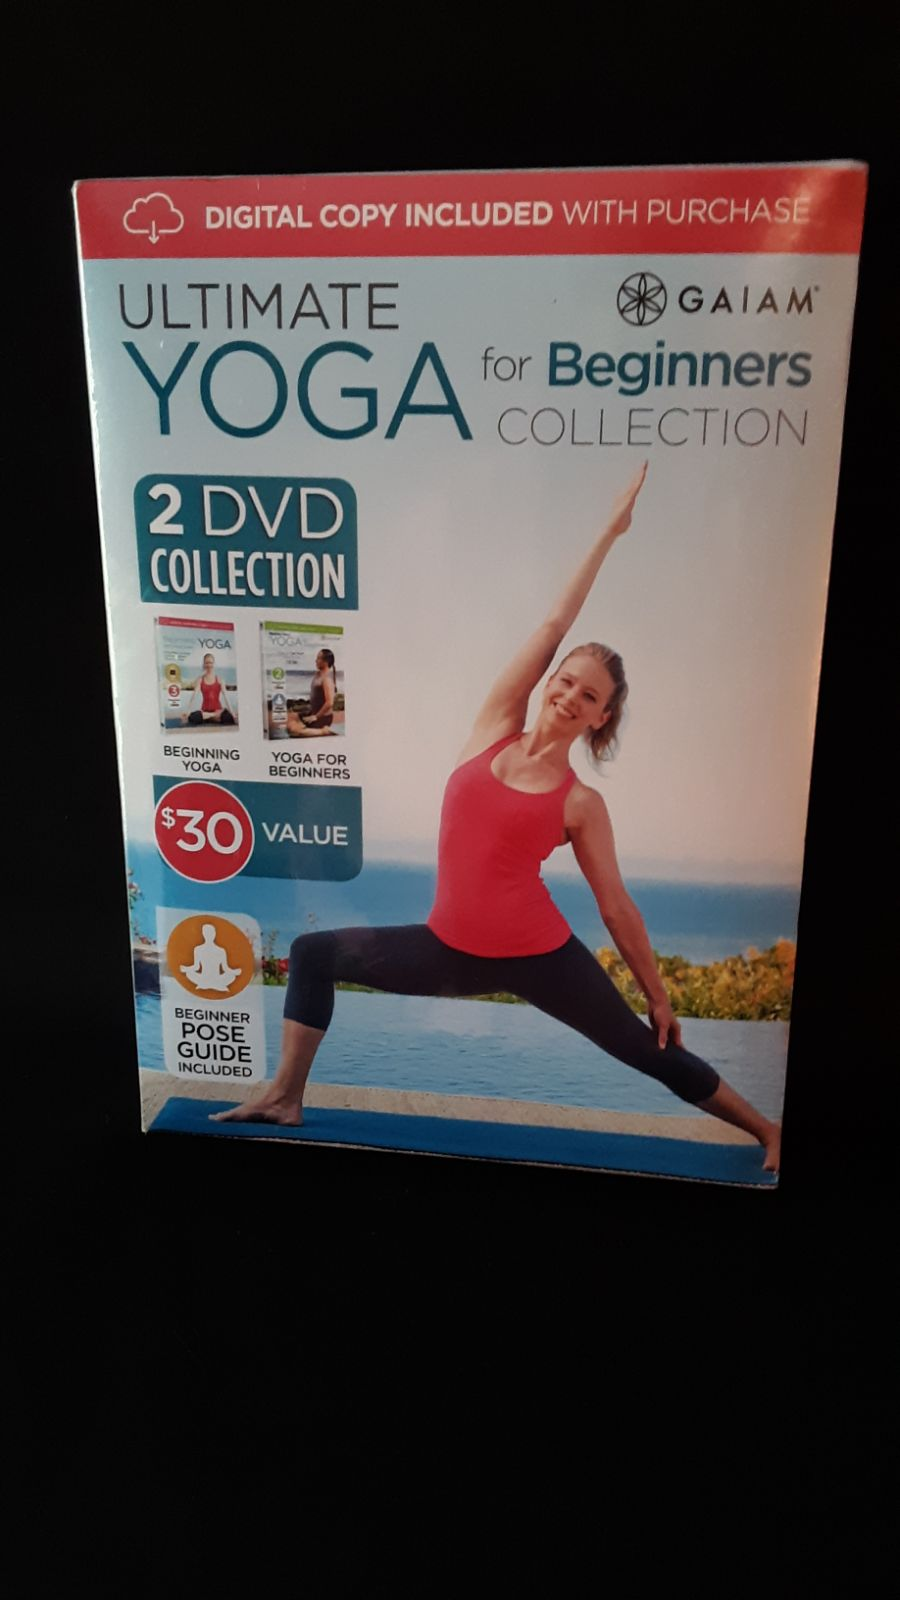 Ultimate Yoga for beginners.